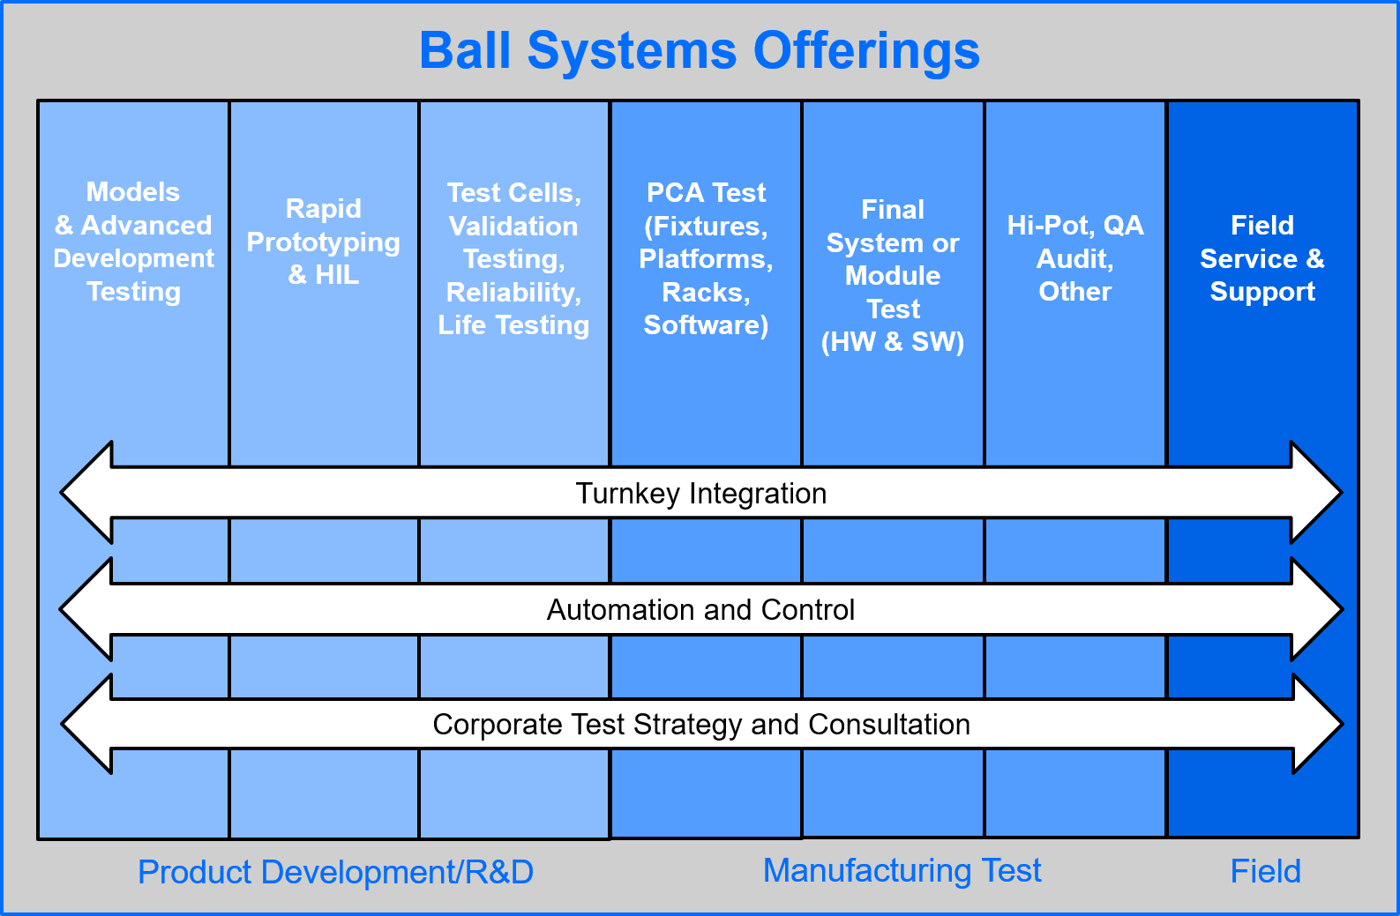 Test Systems | Ball Systems